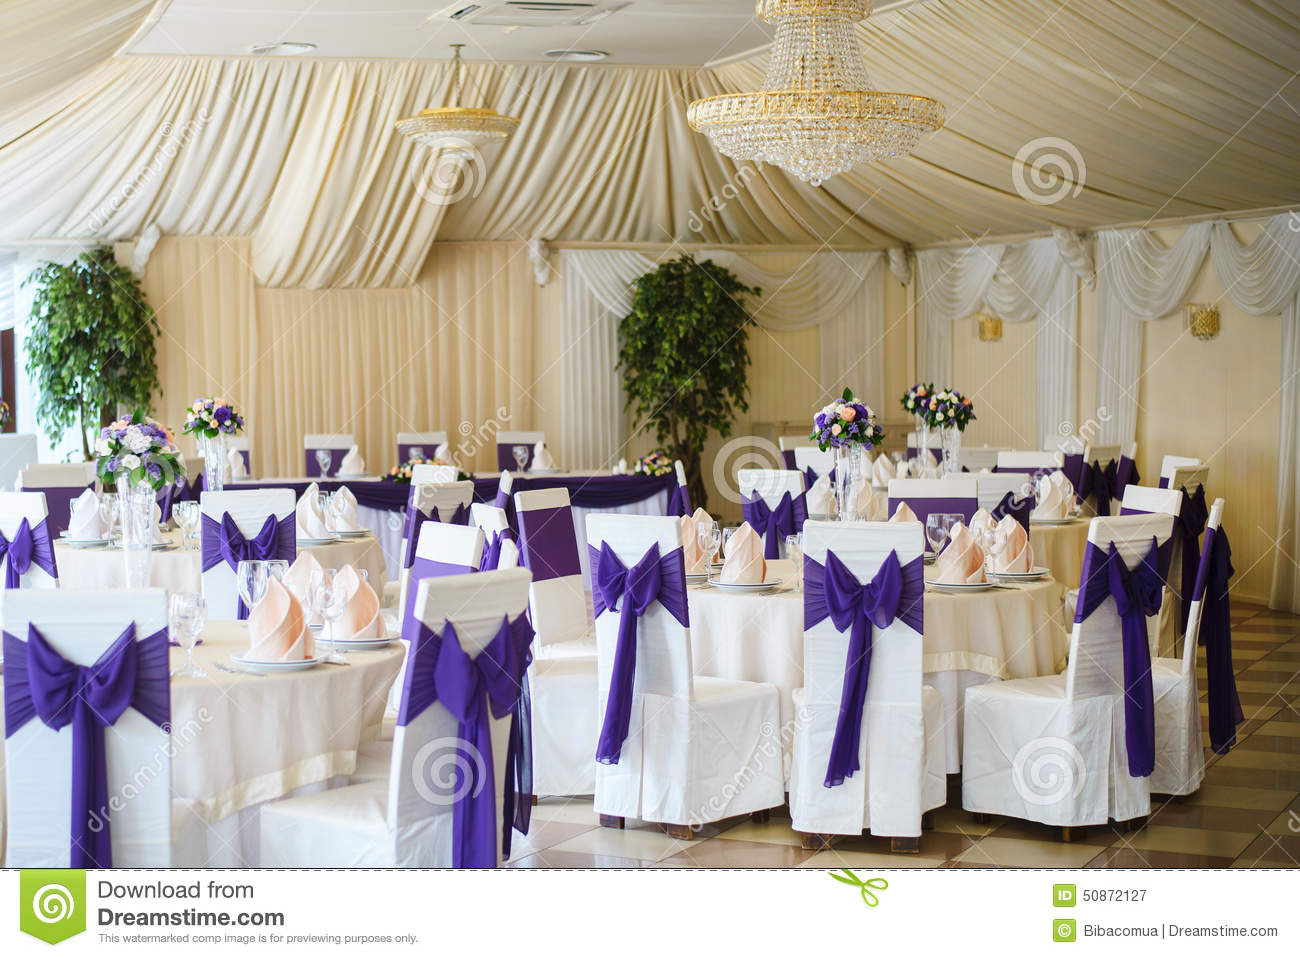 Wedding Chair And Table Setting Stock Image - Image of gorgeous ...